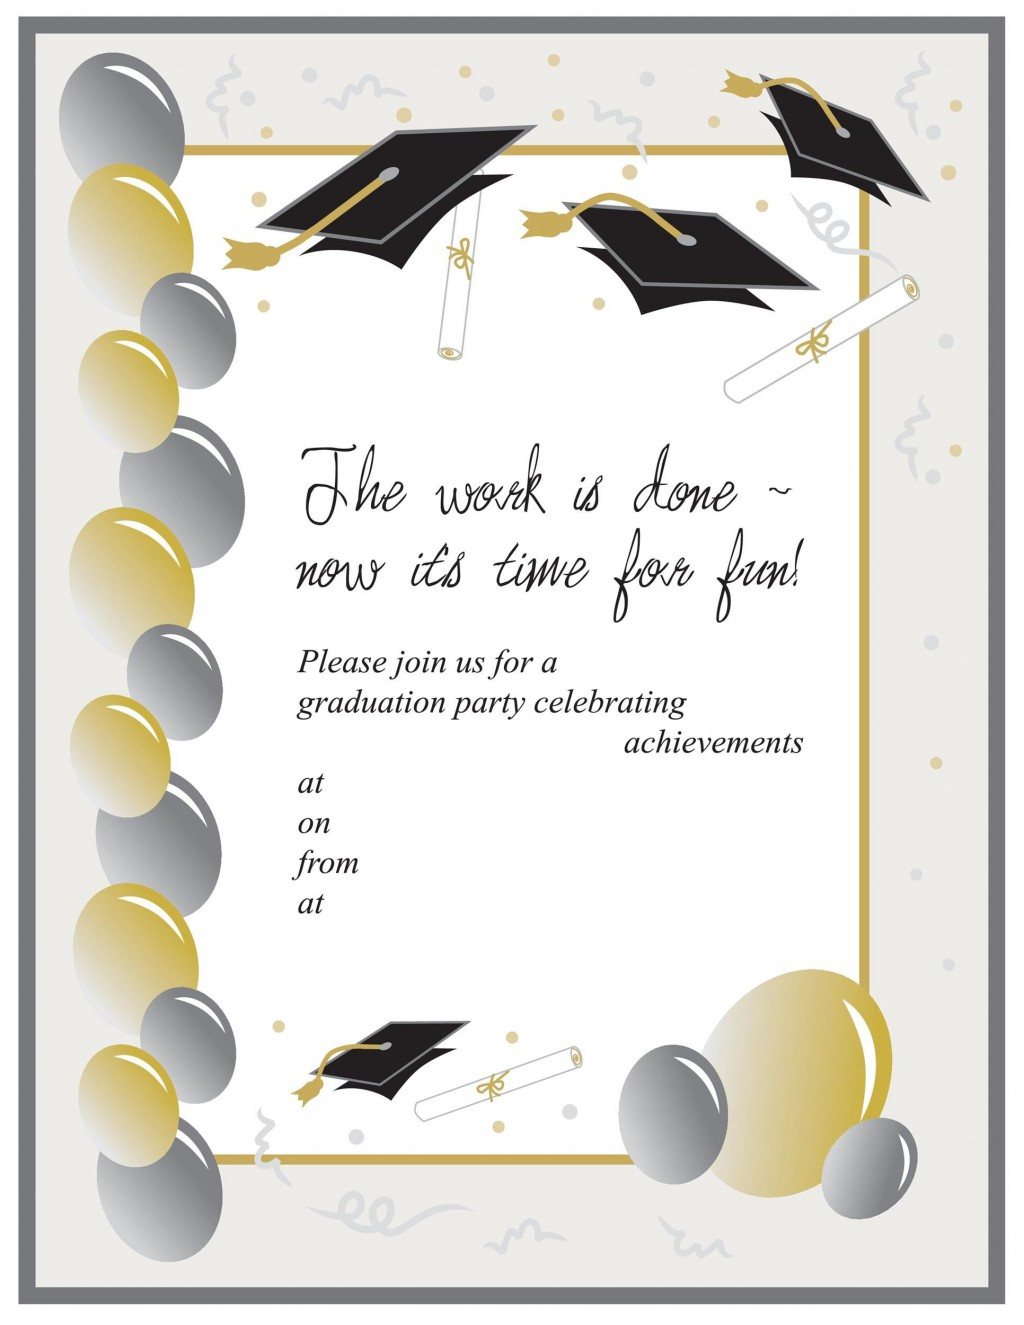 005 Unbelievable Graduation Party Invitation Template Inspiration  Templates 4 Per Page Free ReceptionLarge